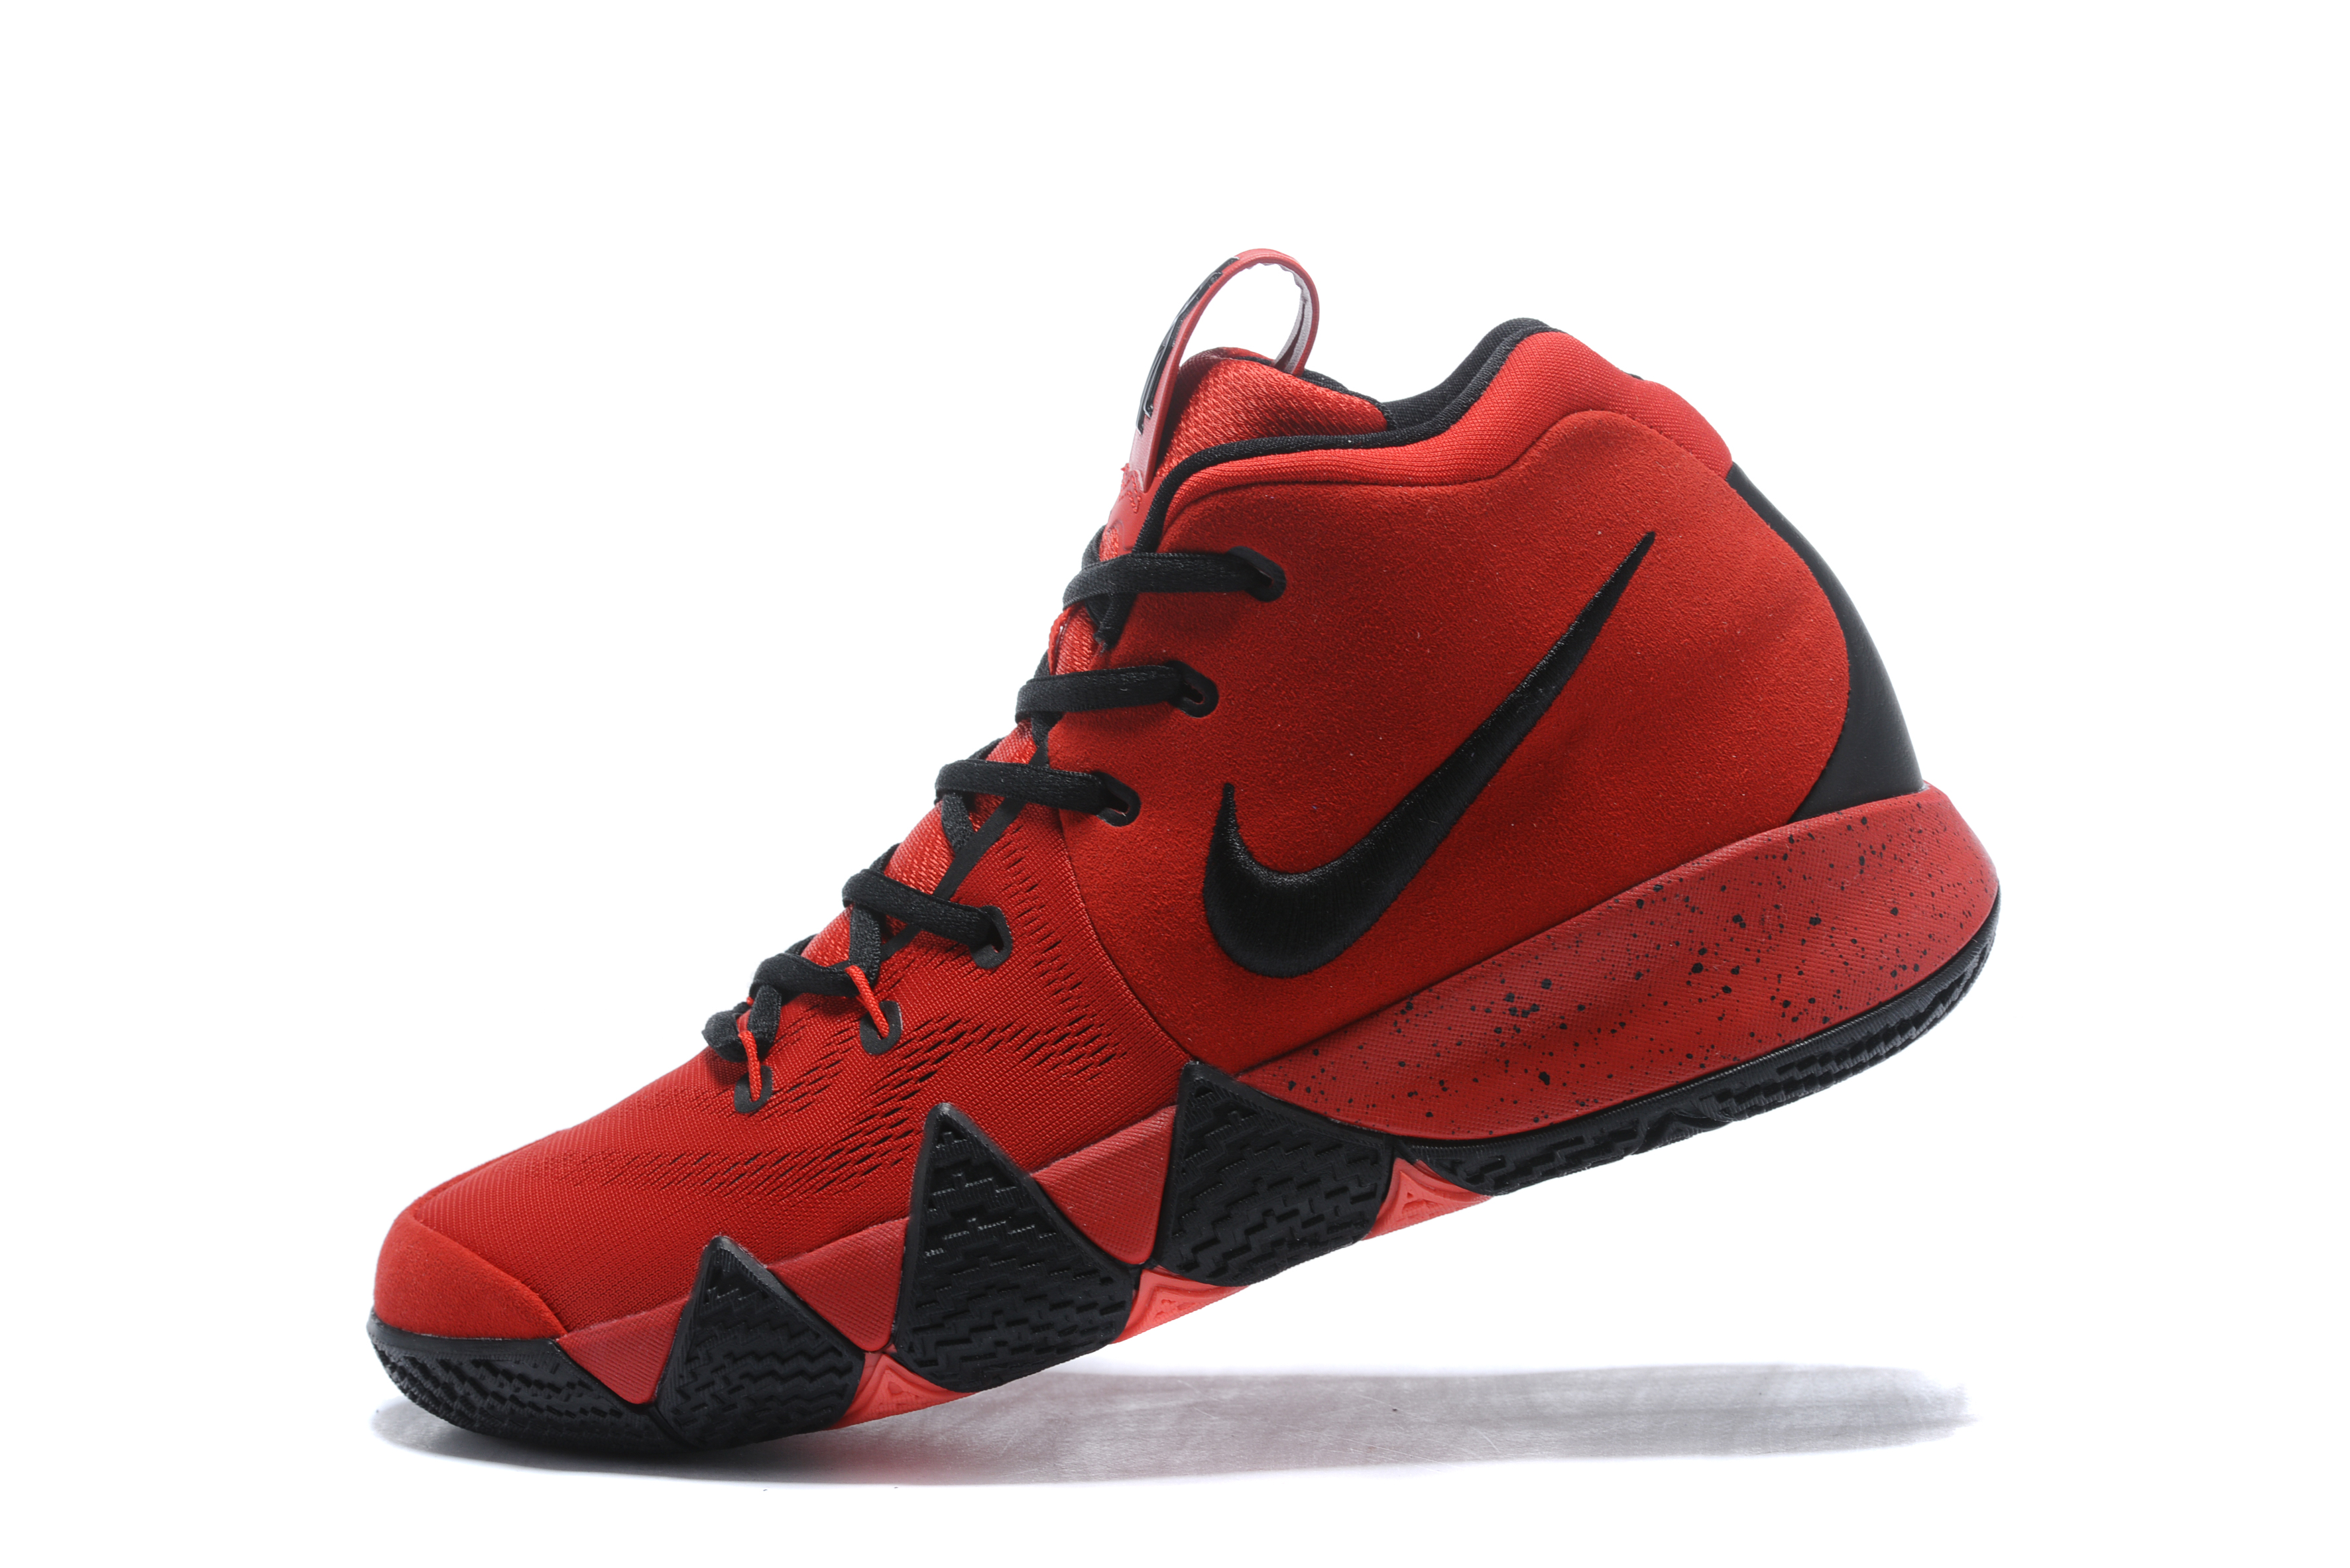 official photos 297e9 94c07 ... australia nike kyrie 4 red black outlet 12311 f5d33